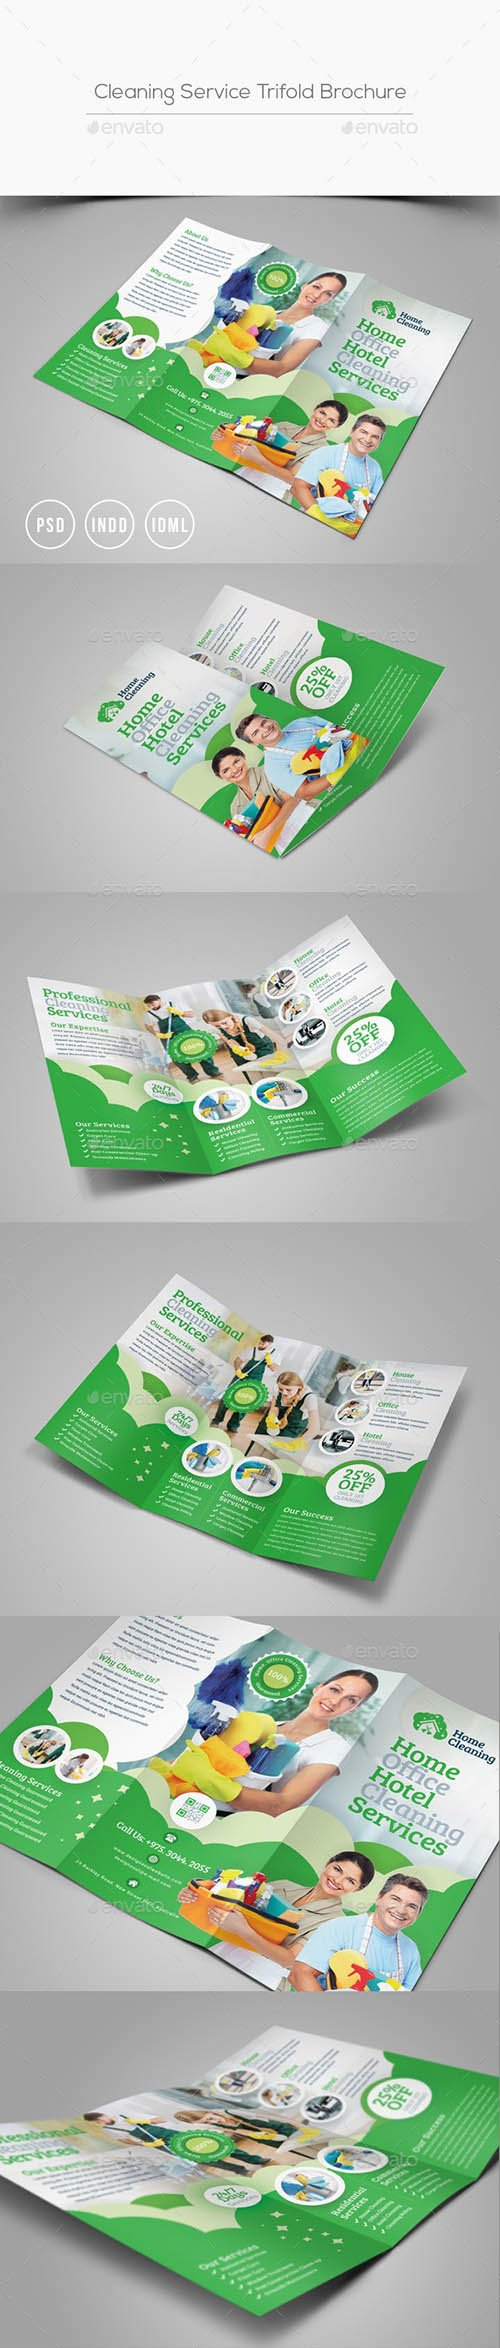 Cleaning Service Trifold Brochure 24572071